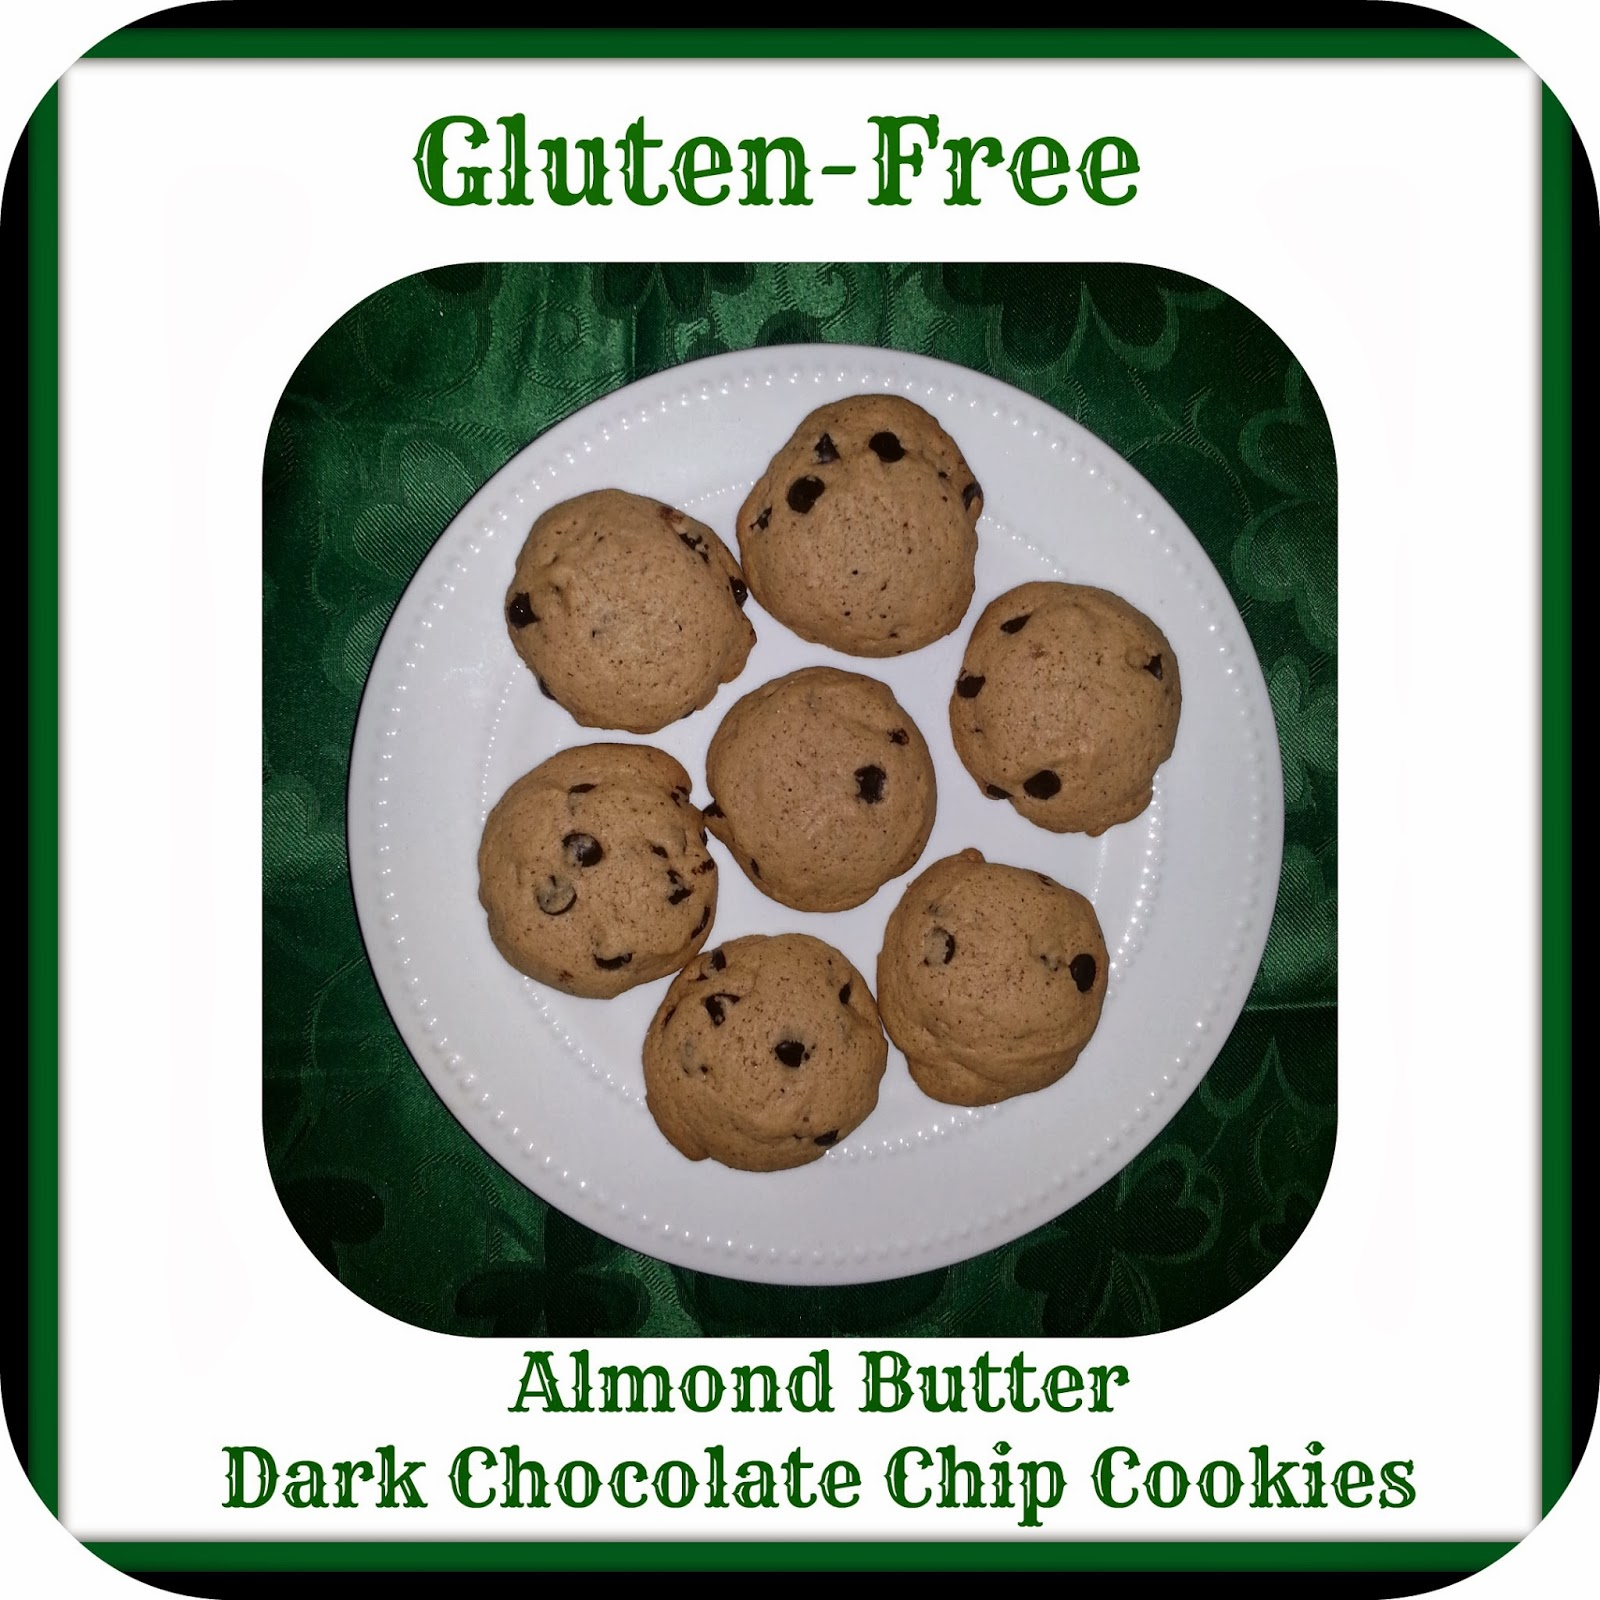 ... way thru life: Gluten ~ Free Almond Butter Dark Chocolate Chip Cookies